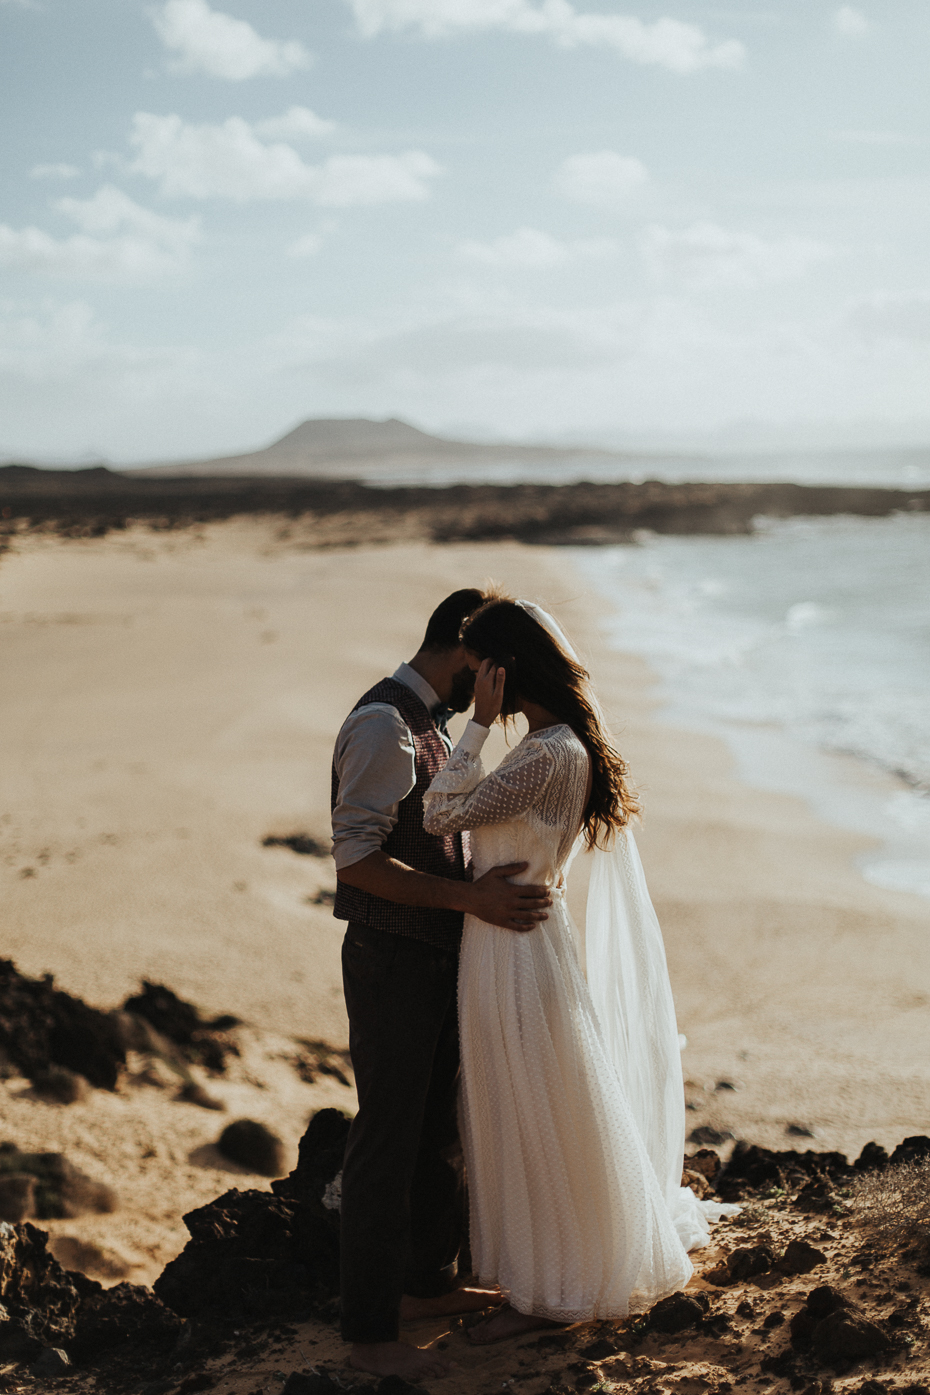 hochzeitsfotograf-wedding-workshop-lagraciosa-93